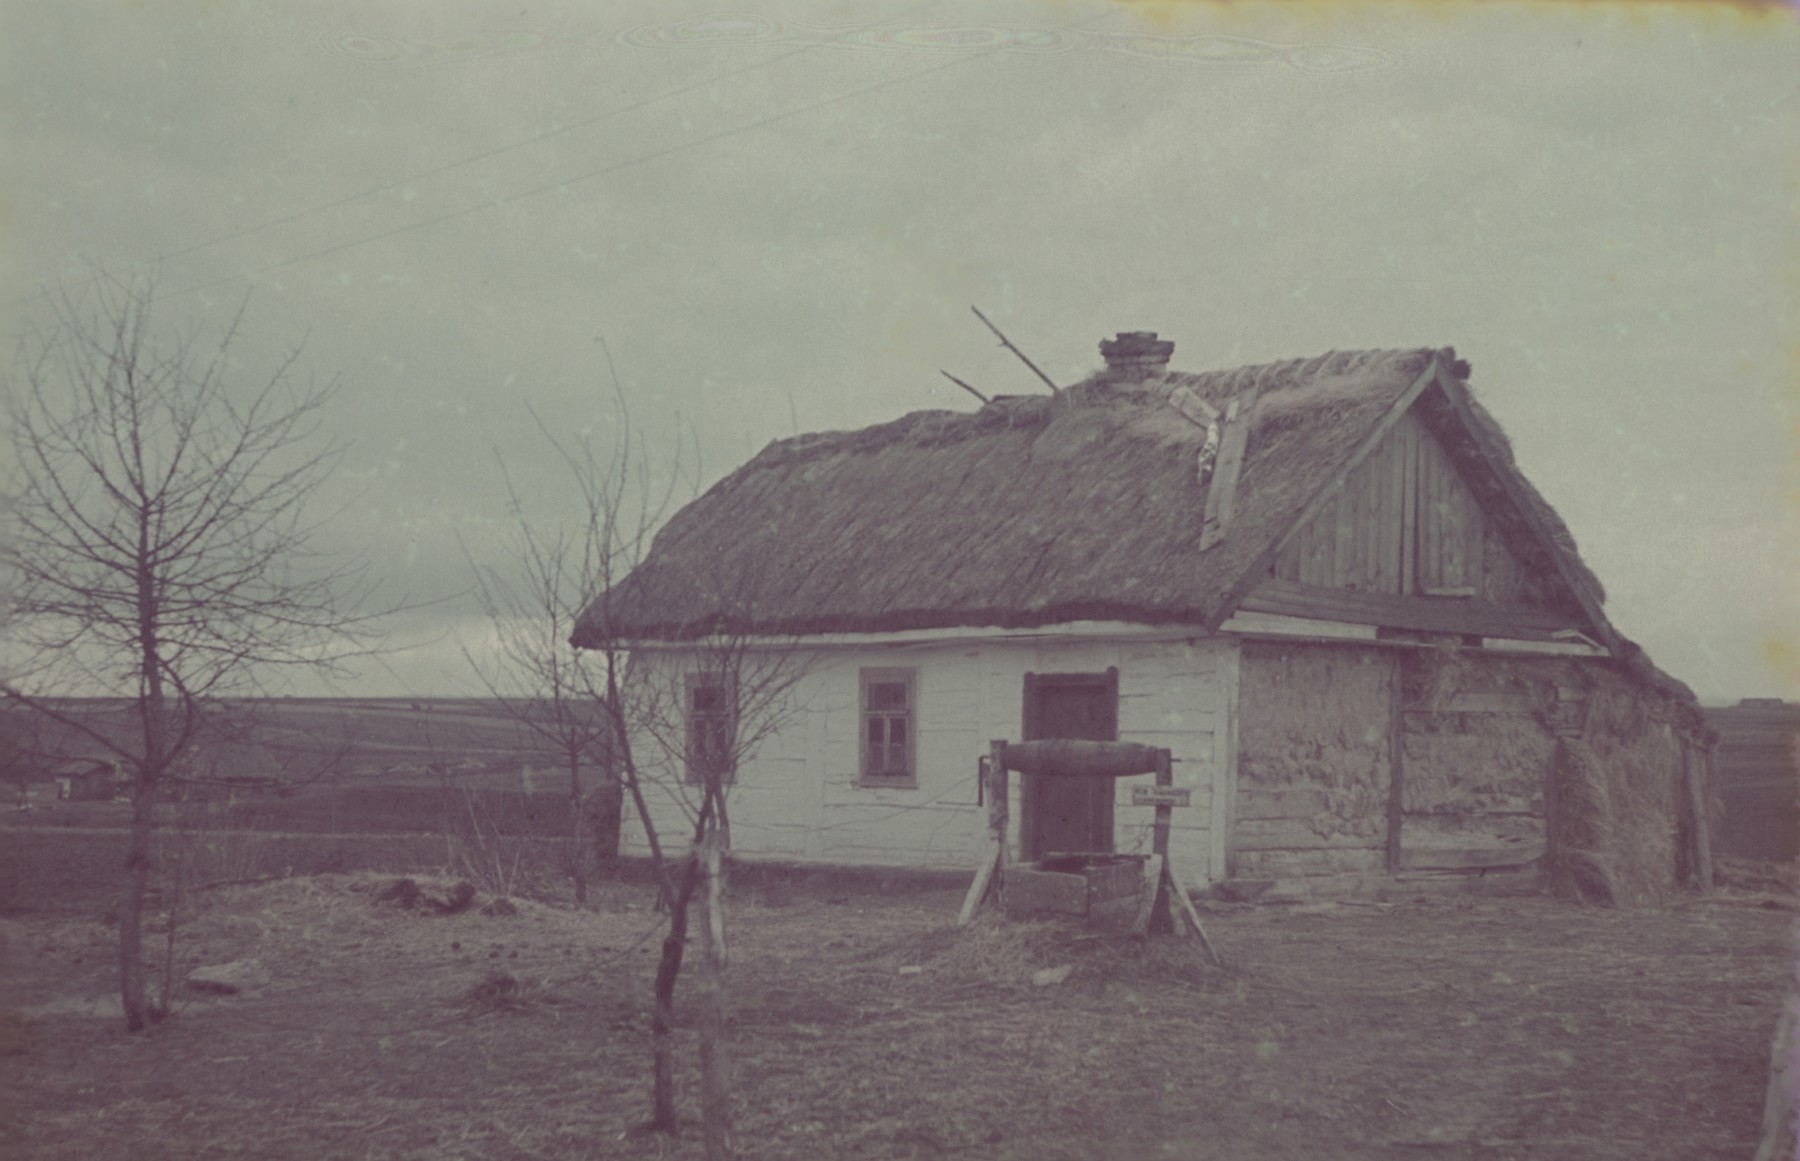 A view of a house with a thatched roof in or near Lodz.